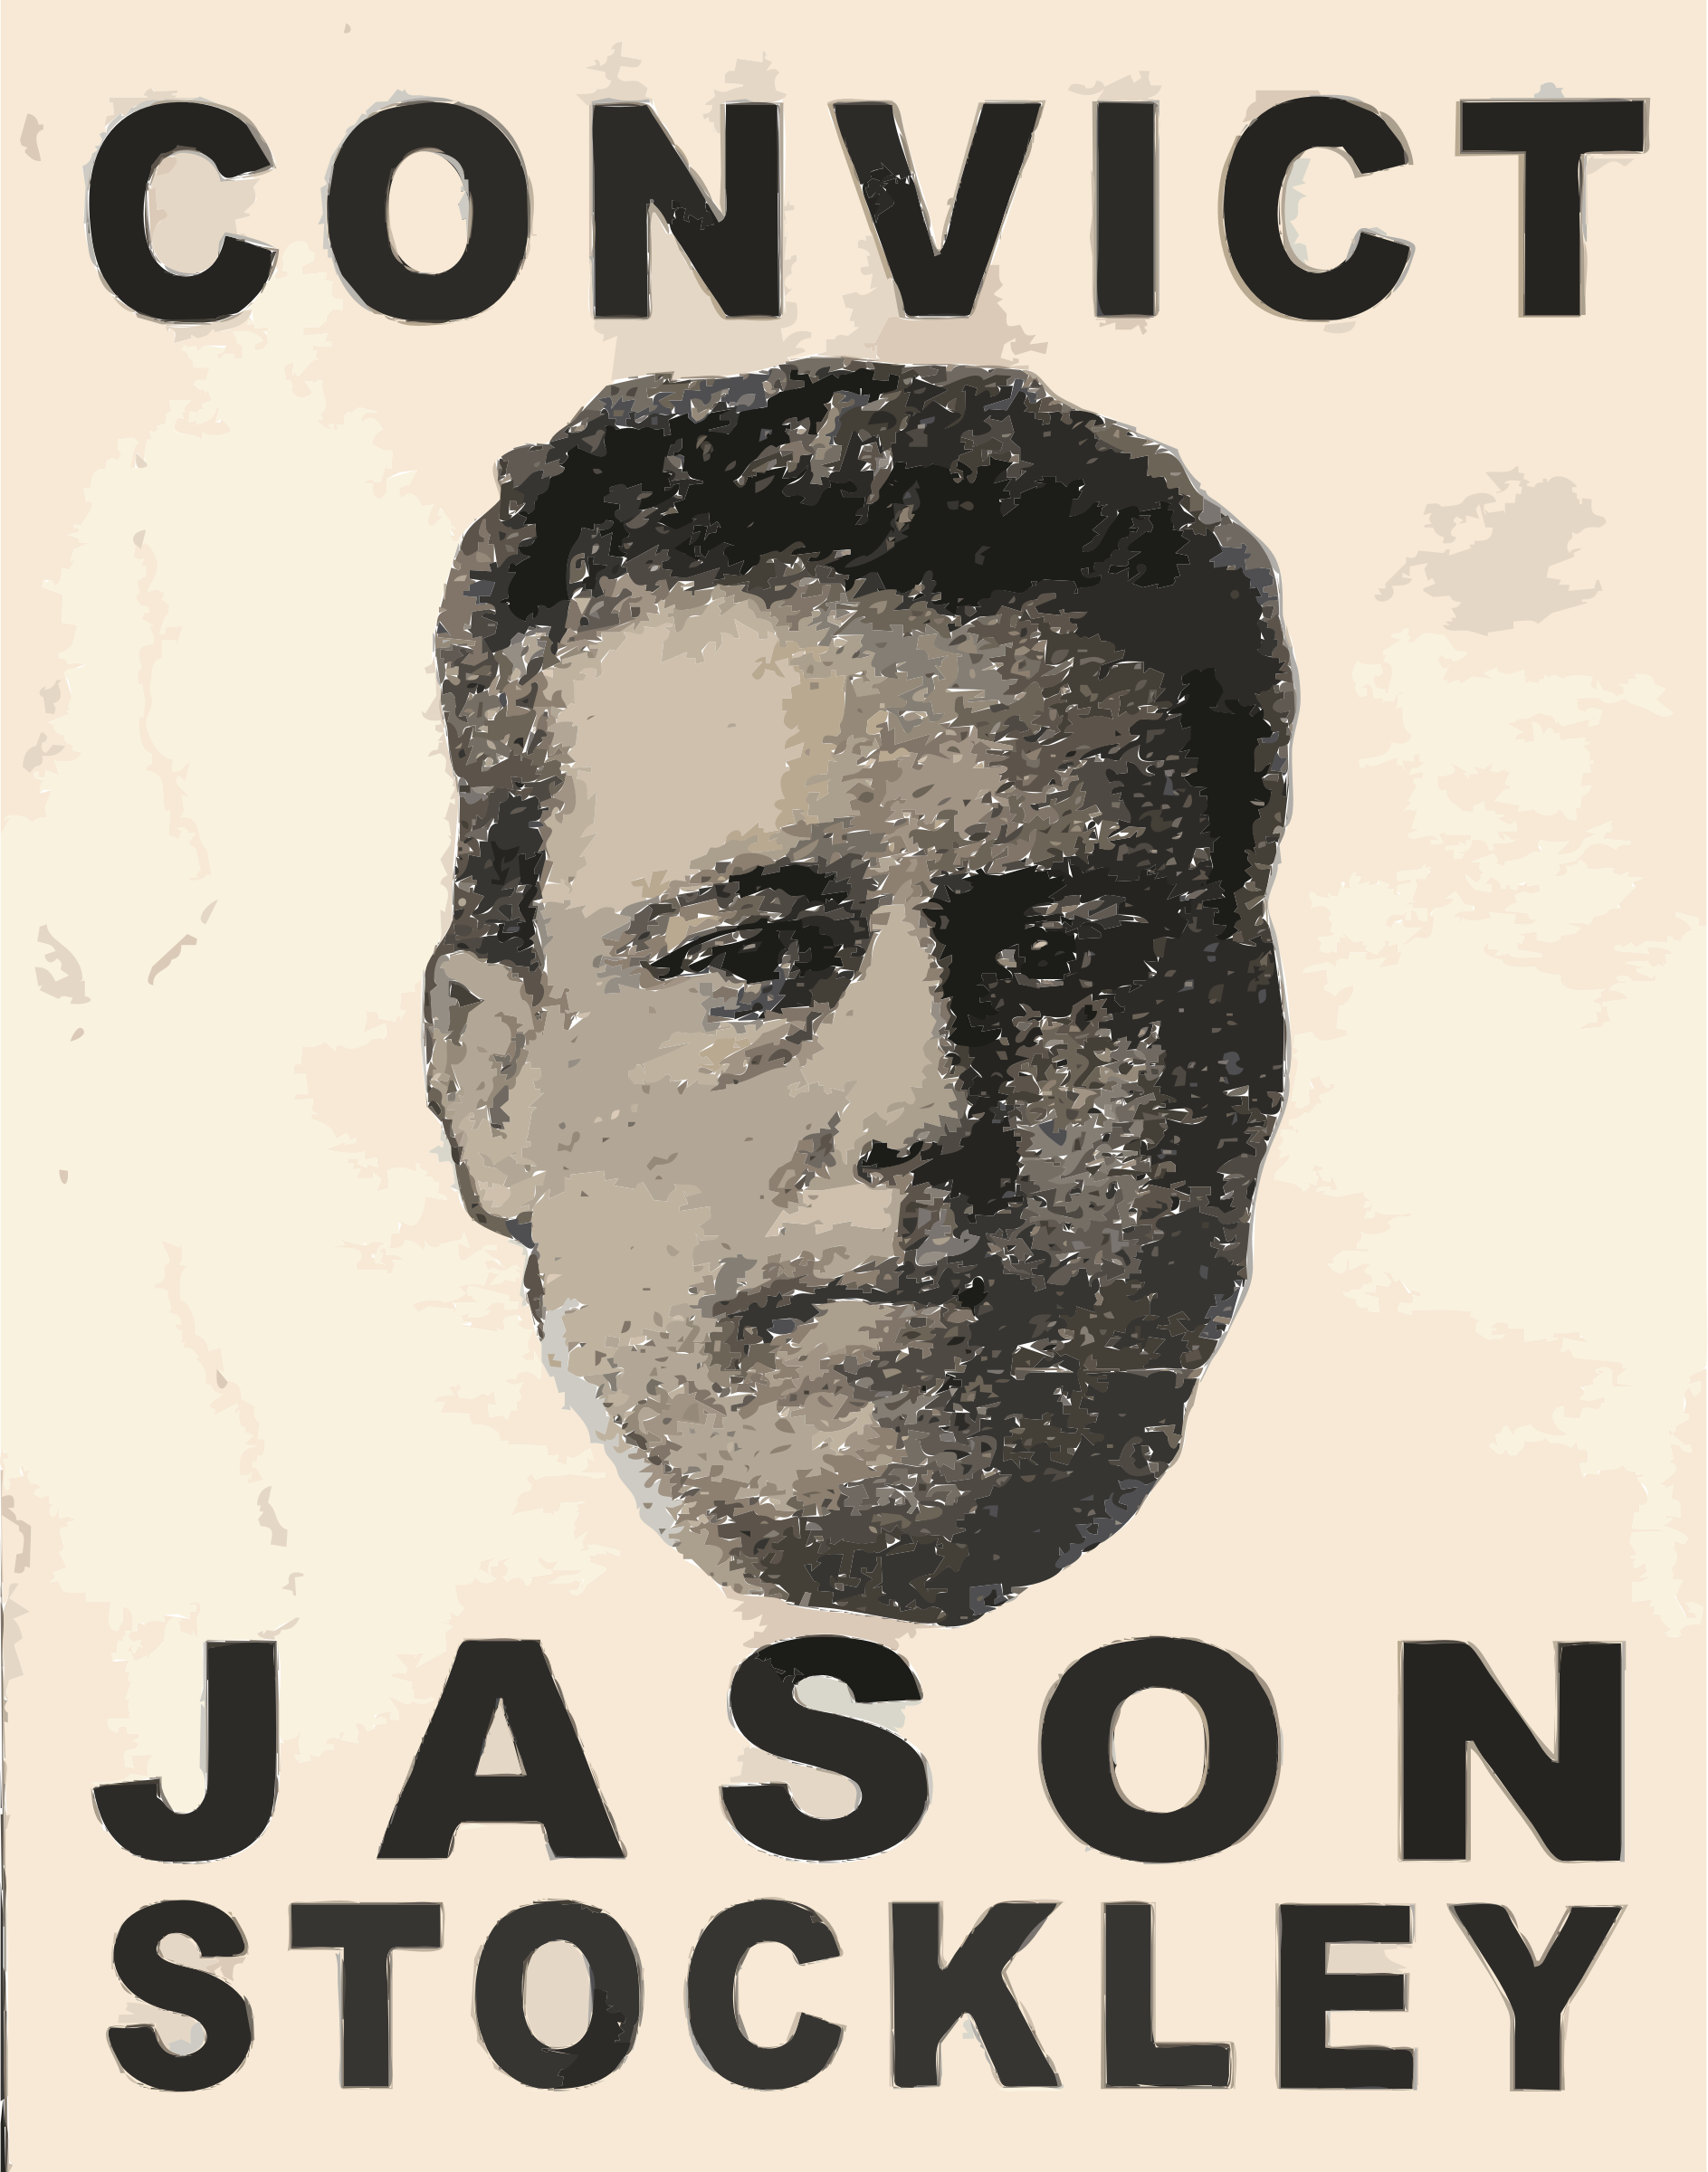 Convict Jason Stockley Tiltshift by rejon